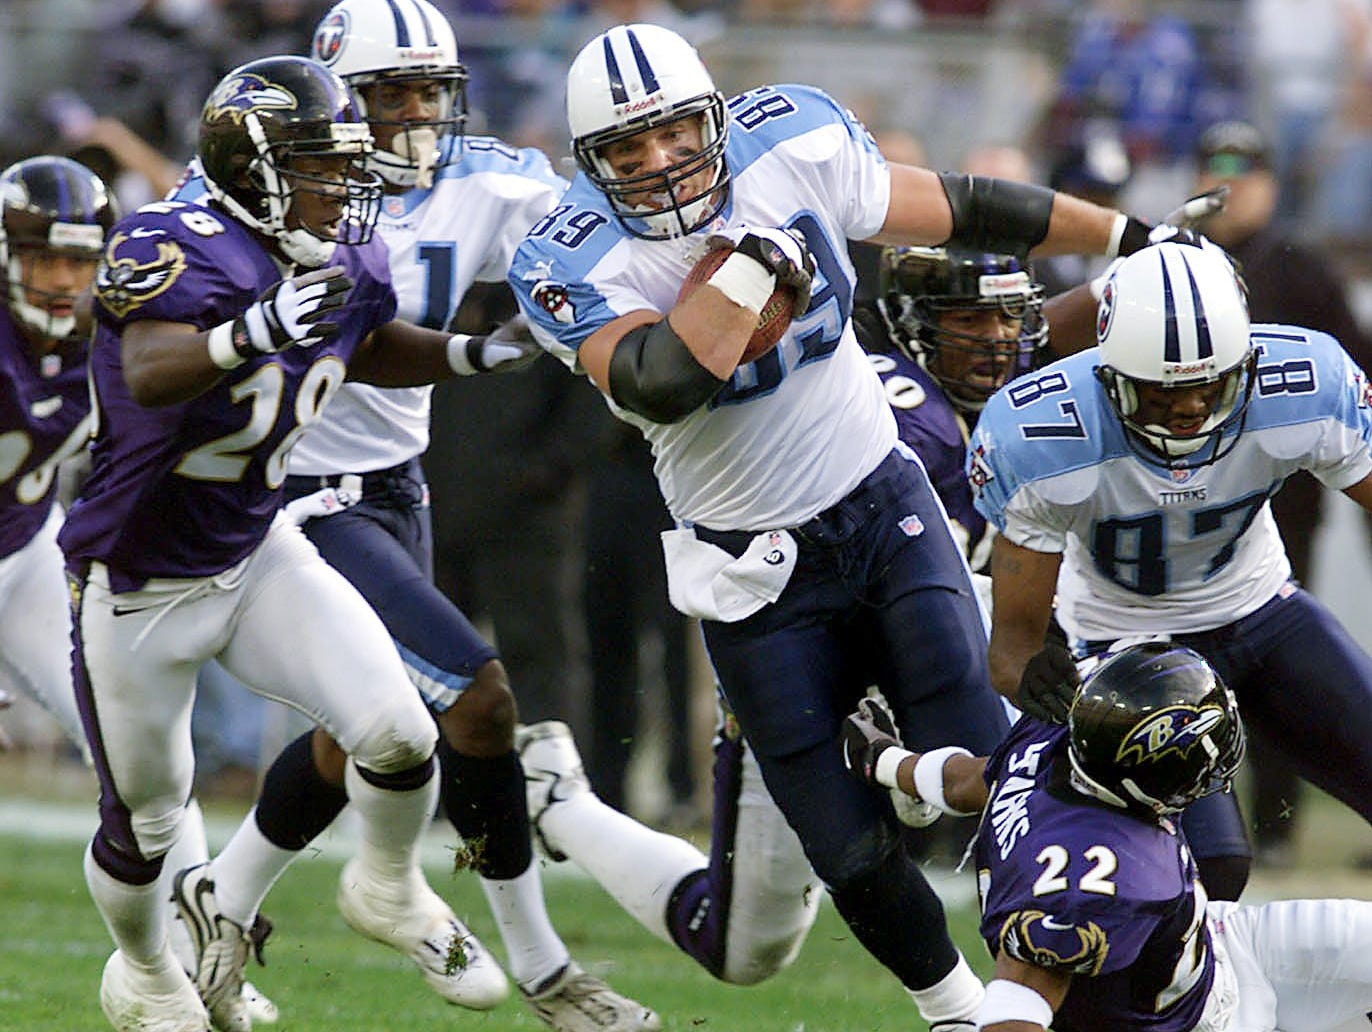 Tennessee Titans tight end Frank Wycheck (89) breaks out for first down yardage against the Baltimore Ravens Dec. 5, 1999, but the Titans got beaten badly 41-14 on the road Dec. 5, 1999.